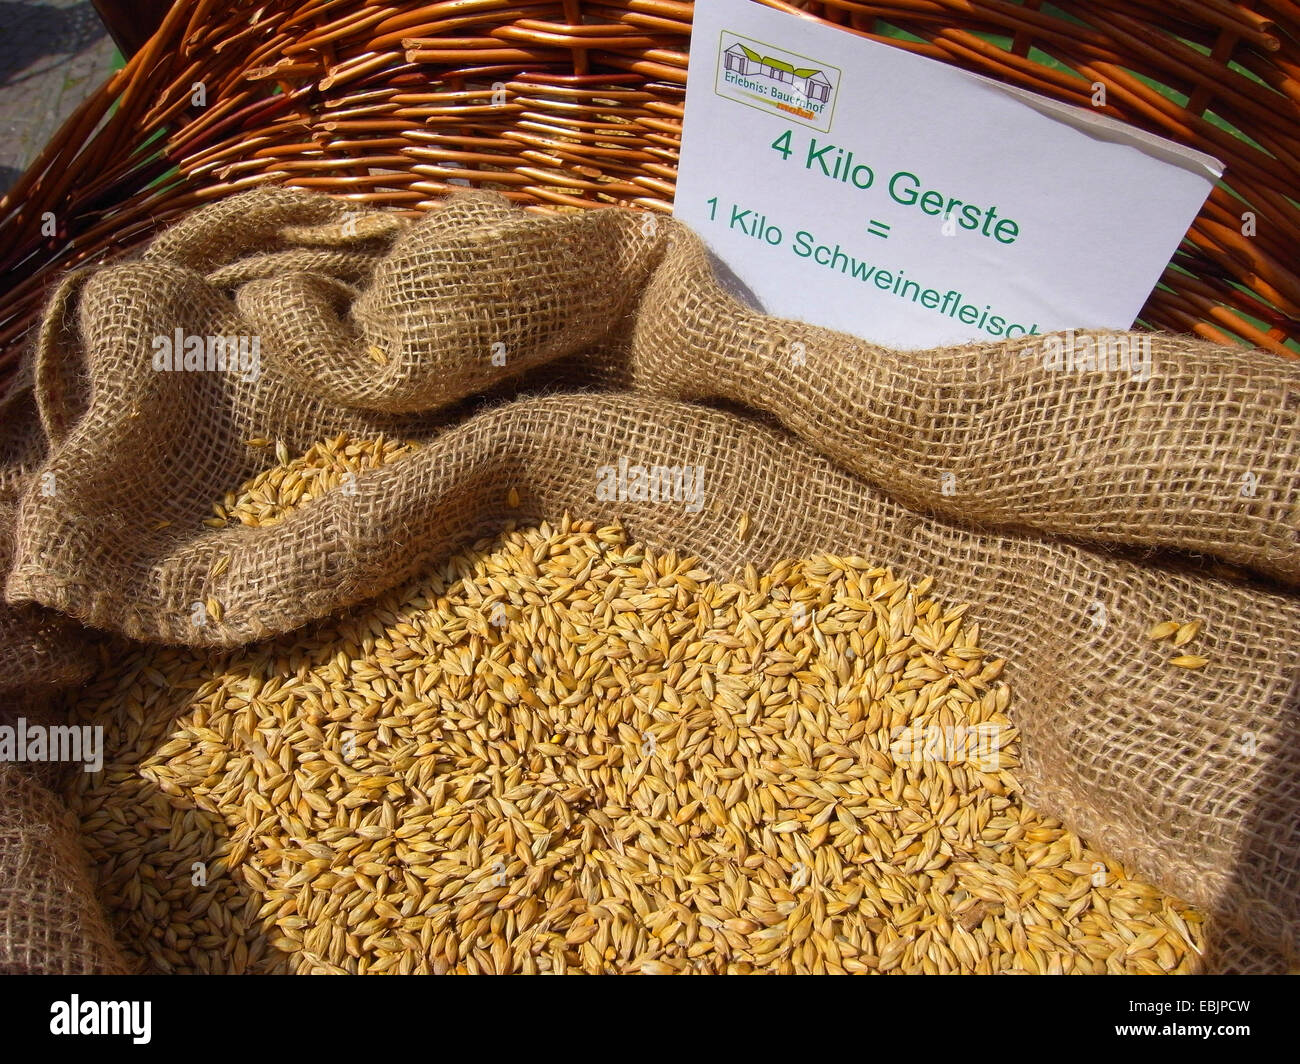 visualization of the energy requirement for meat production: 4 kg barley in a basket - the amount needed for 1 kg - Stock Image